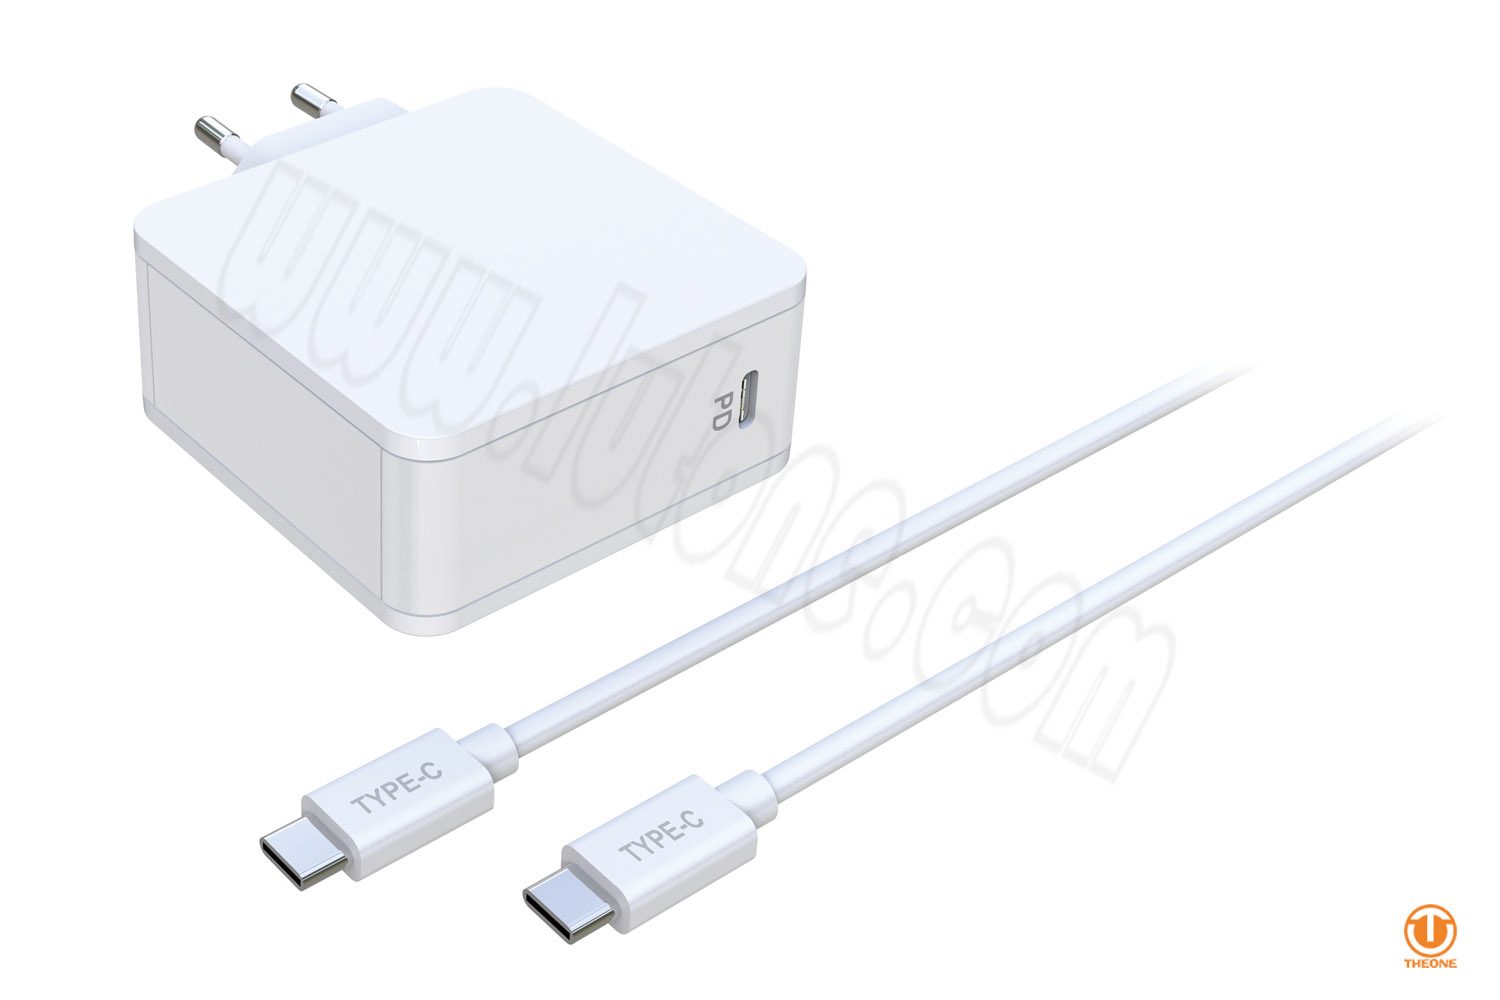 ta06a3-1 usb-c power delivery charger